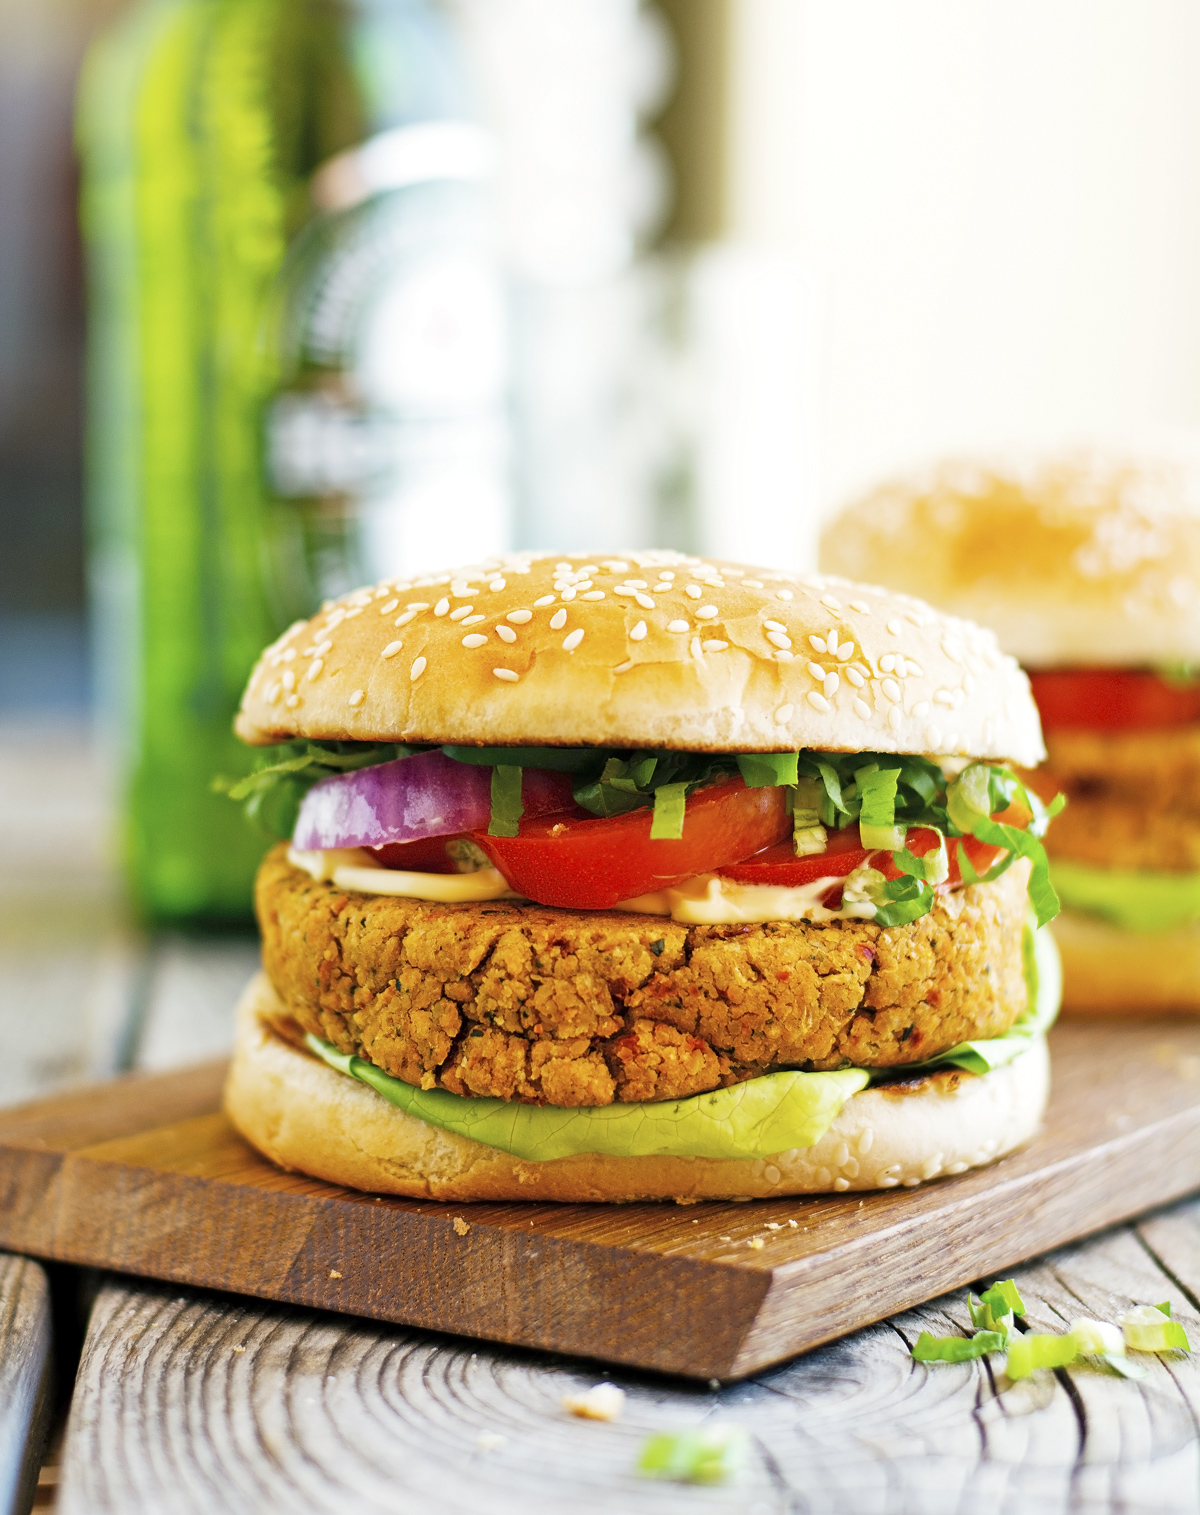 (Vegan) Sun-Dried Tomato and Chickpea Burgers